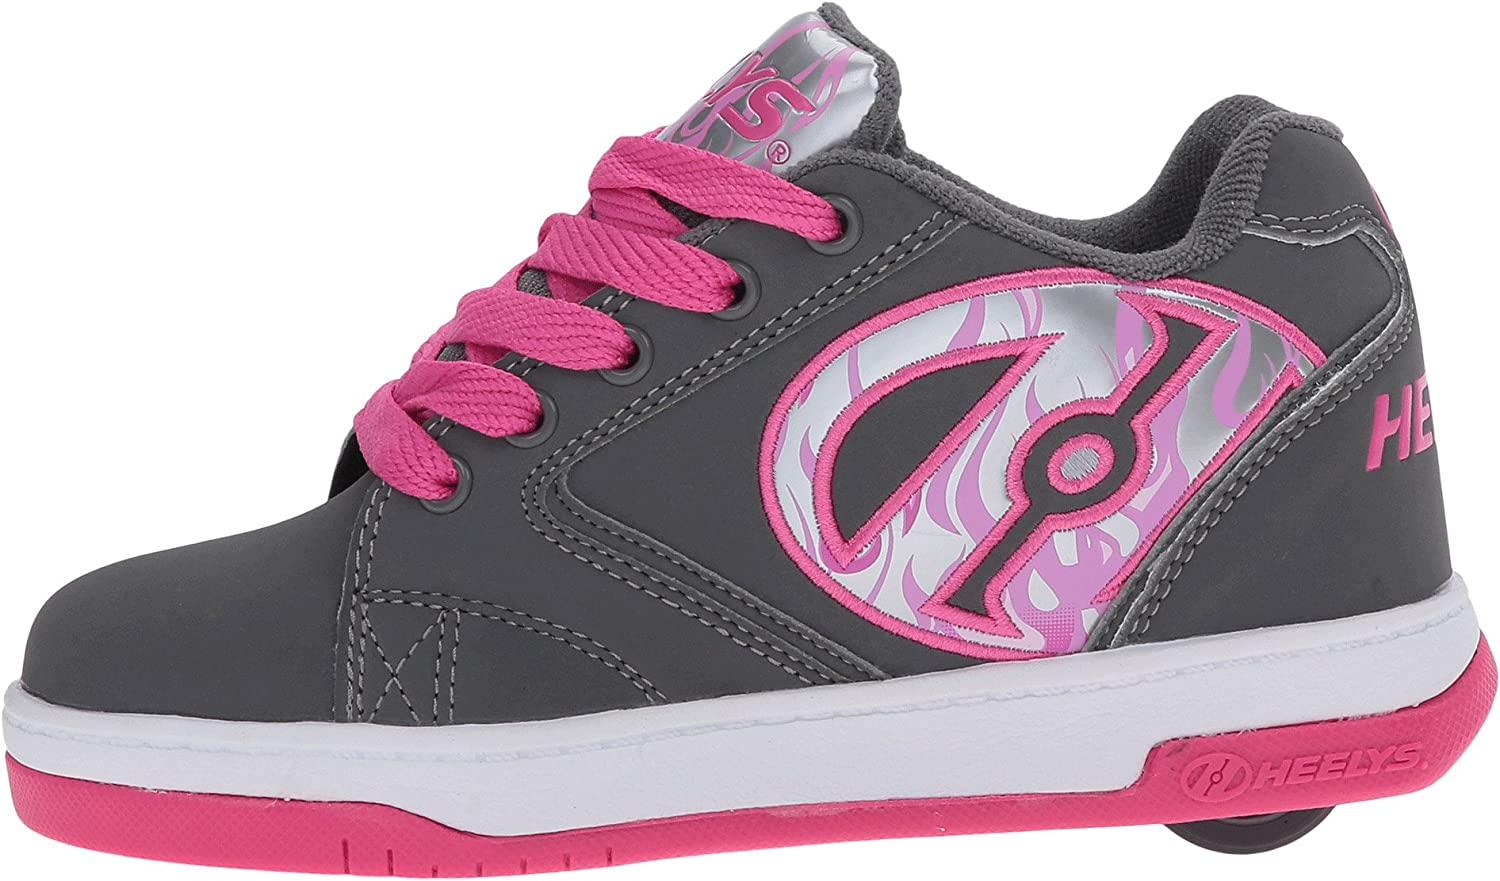 Heelys Kids Propel Ballistic Tennis Shoe